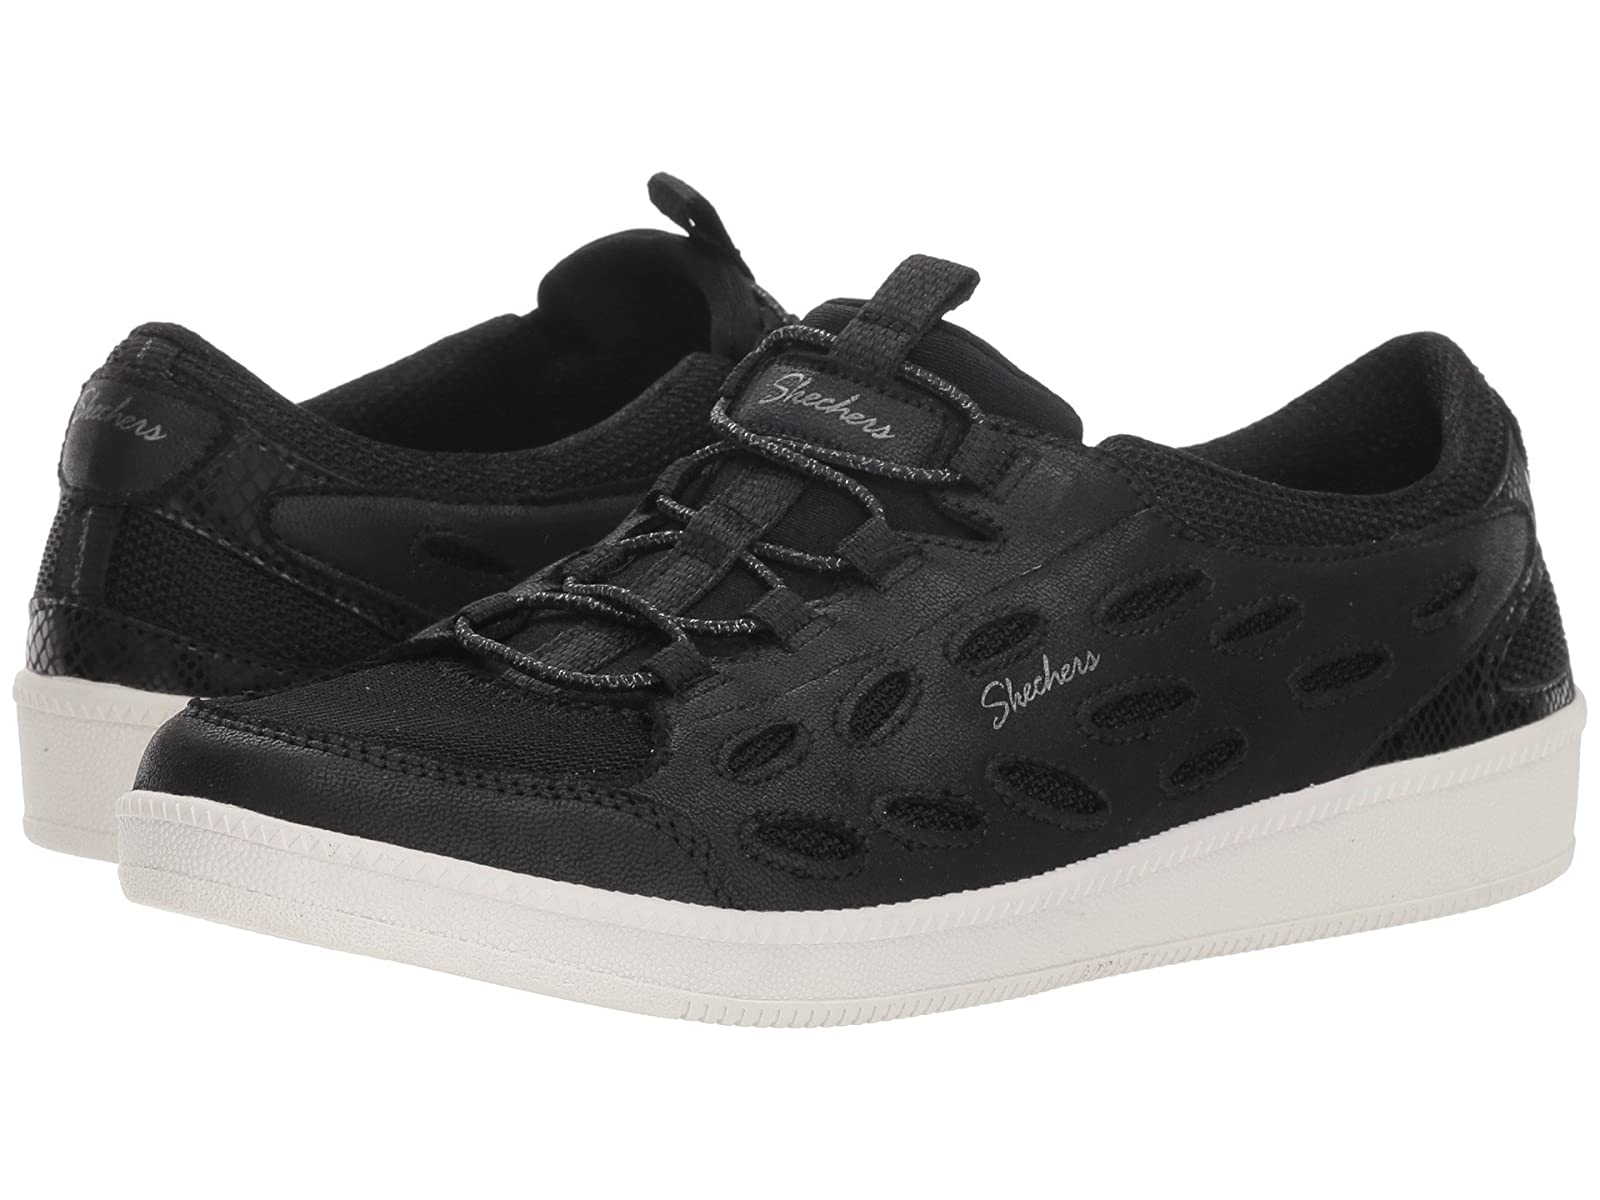 SKECHERS Madison Ave - My DistrictAtmospheric grades have affordable shoes